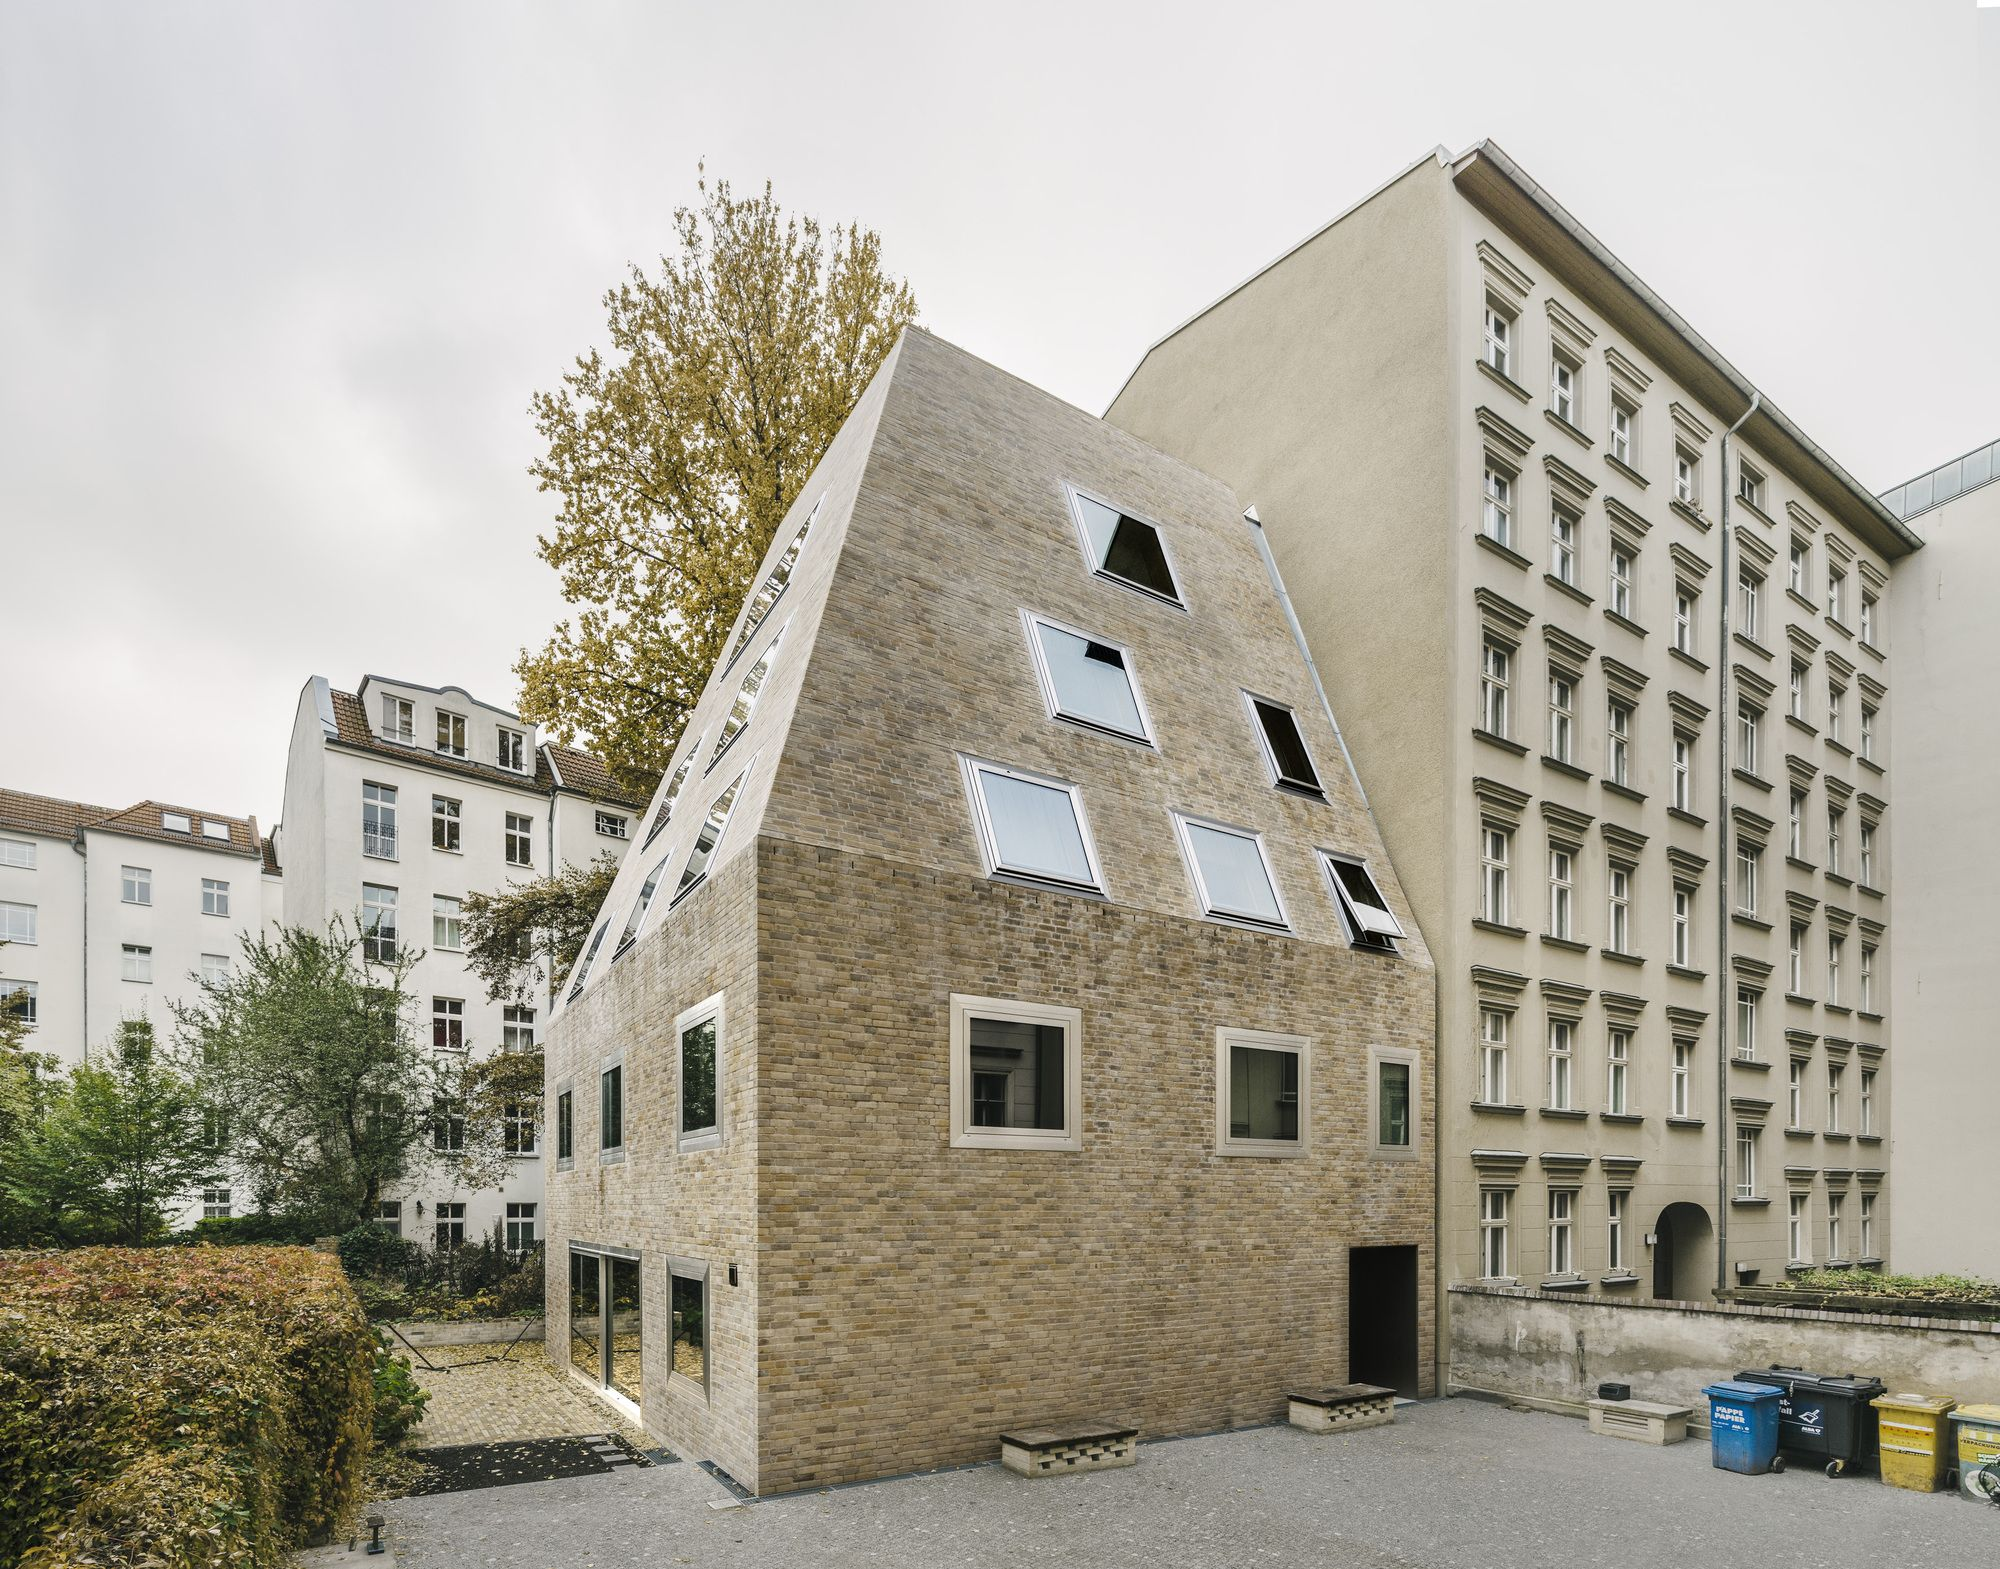 Completed In 2016 In Berlin Germany Images By Simon Menges Laurian Ghinitoiu Christina Moller Tuc Brick Architecture Architecture Residential Architecture